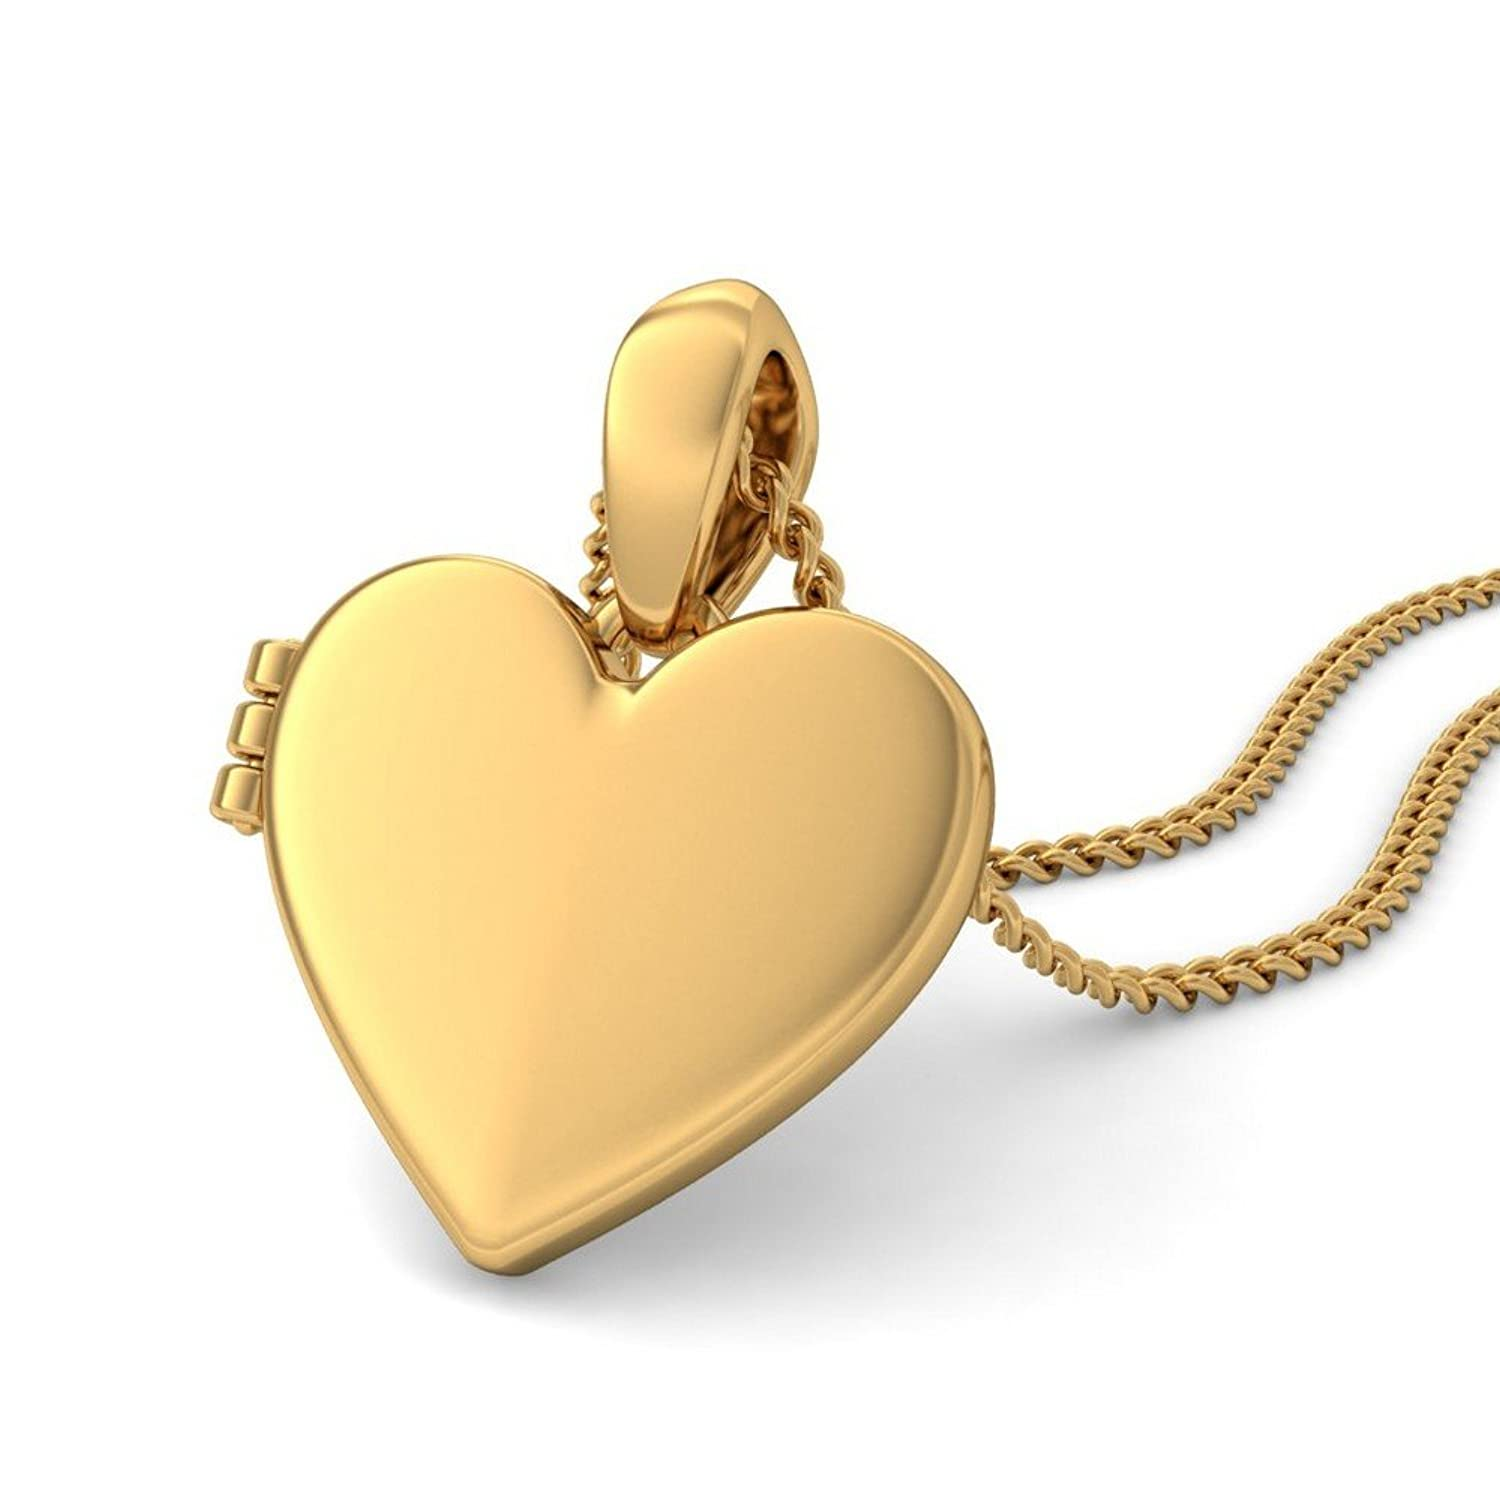 necklace locket low heart pendant dzinetrendz product embossed chain for plated in prices pink women jewellery gold men brass love drussy foil thumb buy openable india at